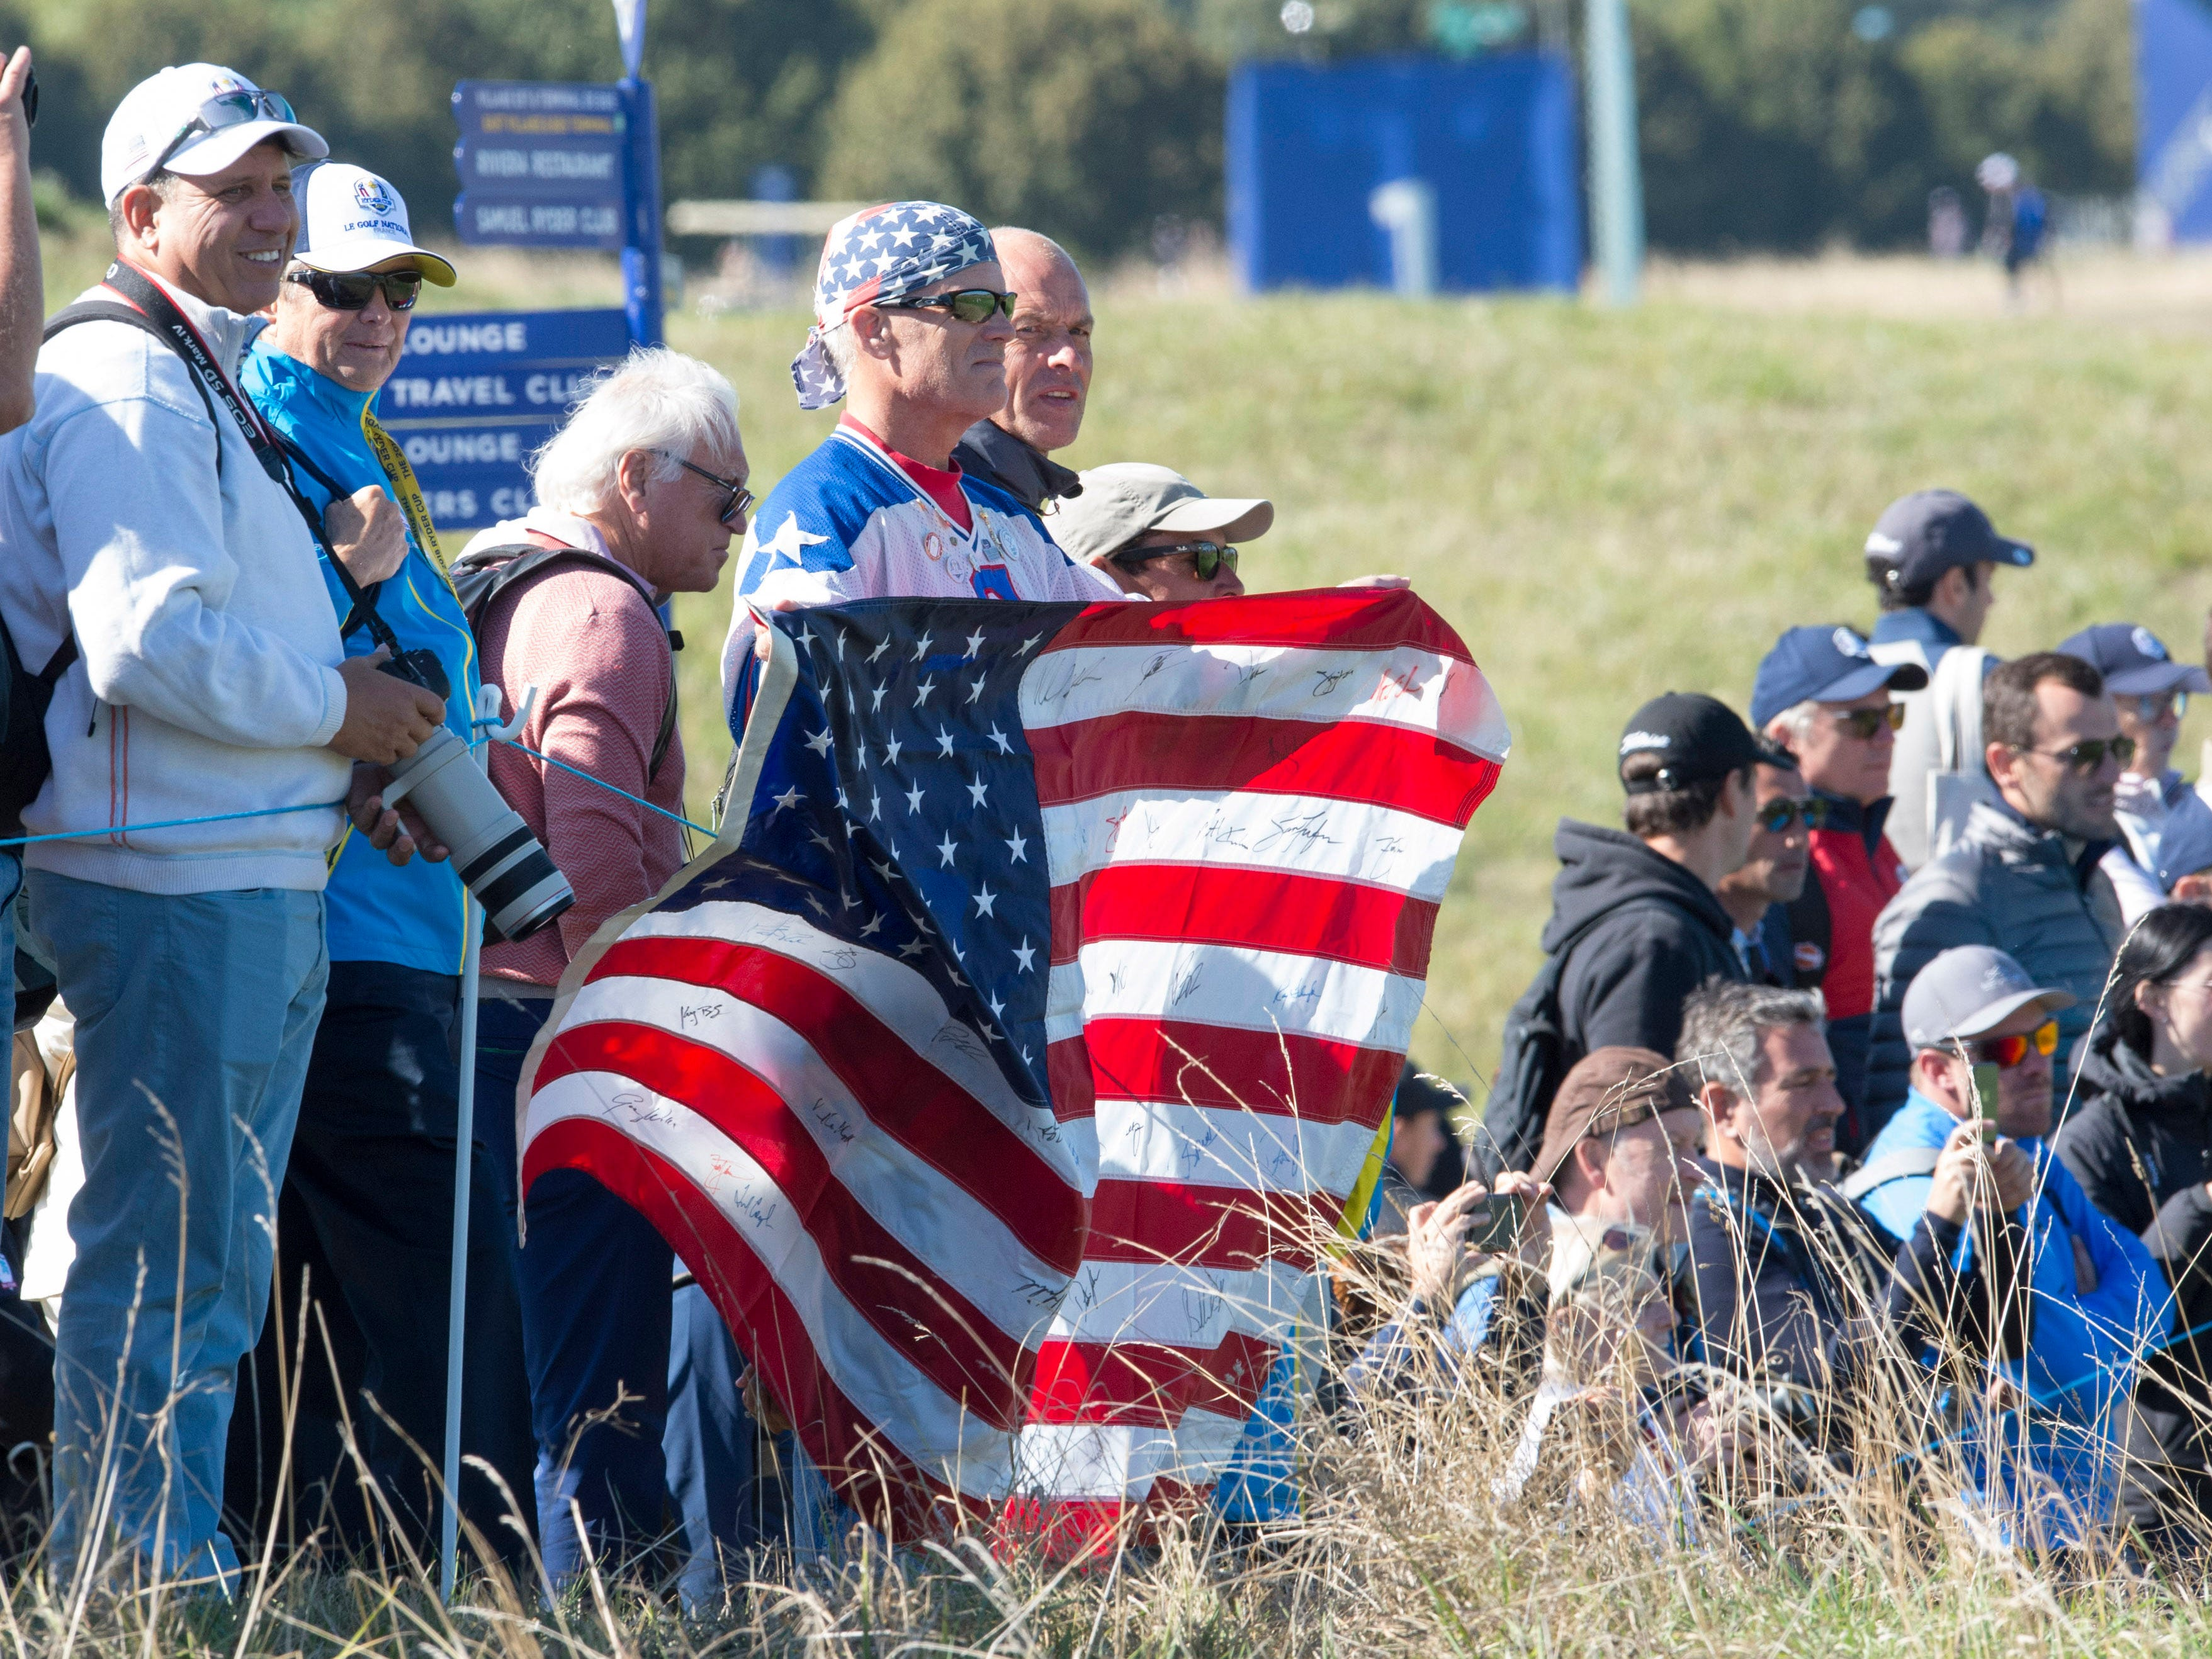 American supporters in the crowd during a Ryder Cup practice.